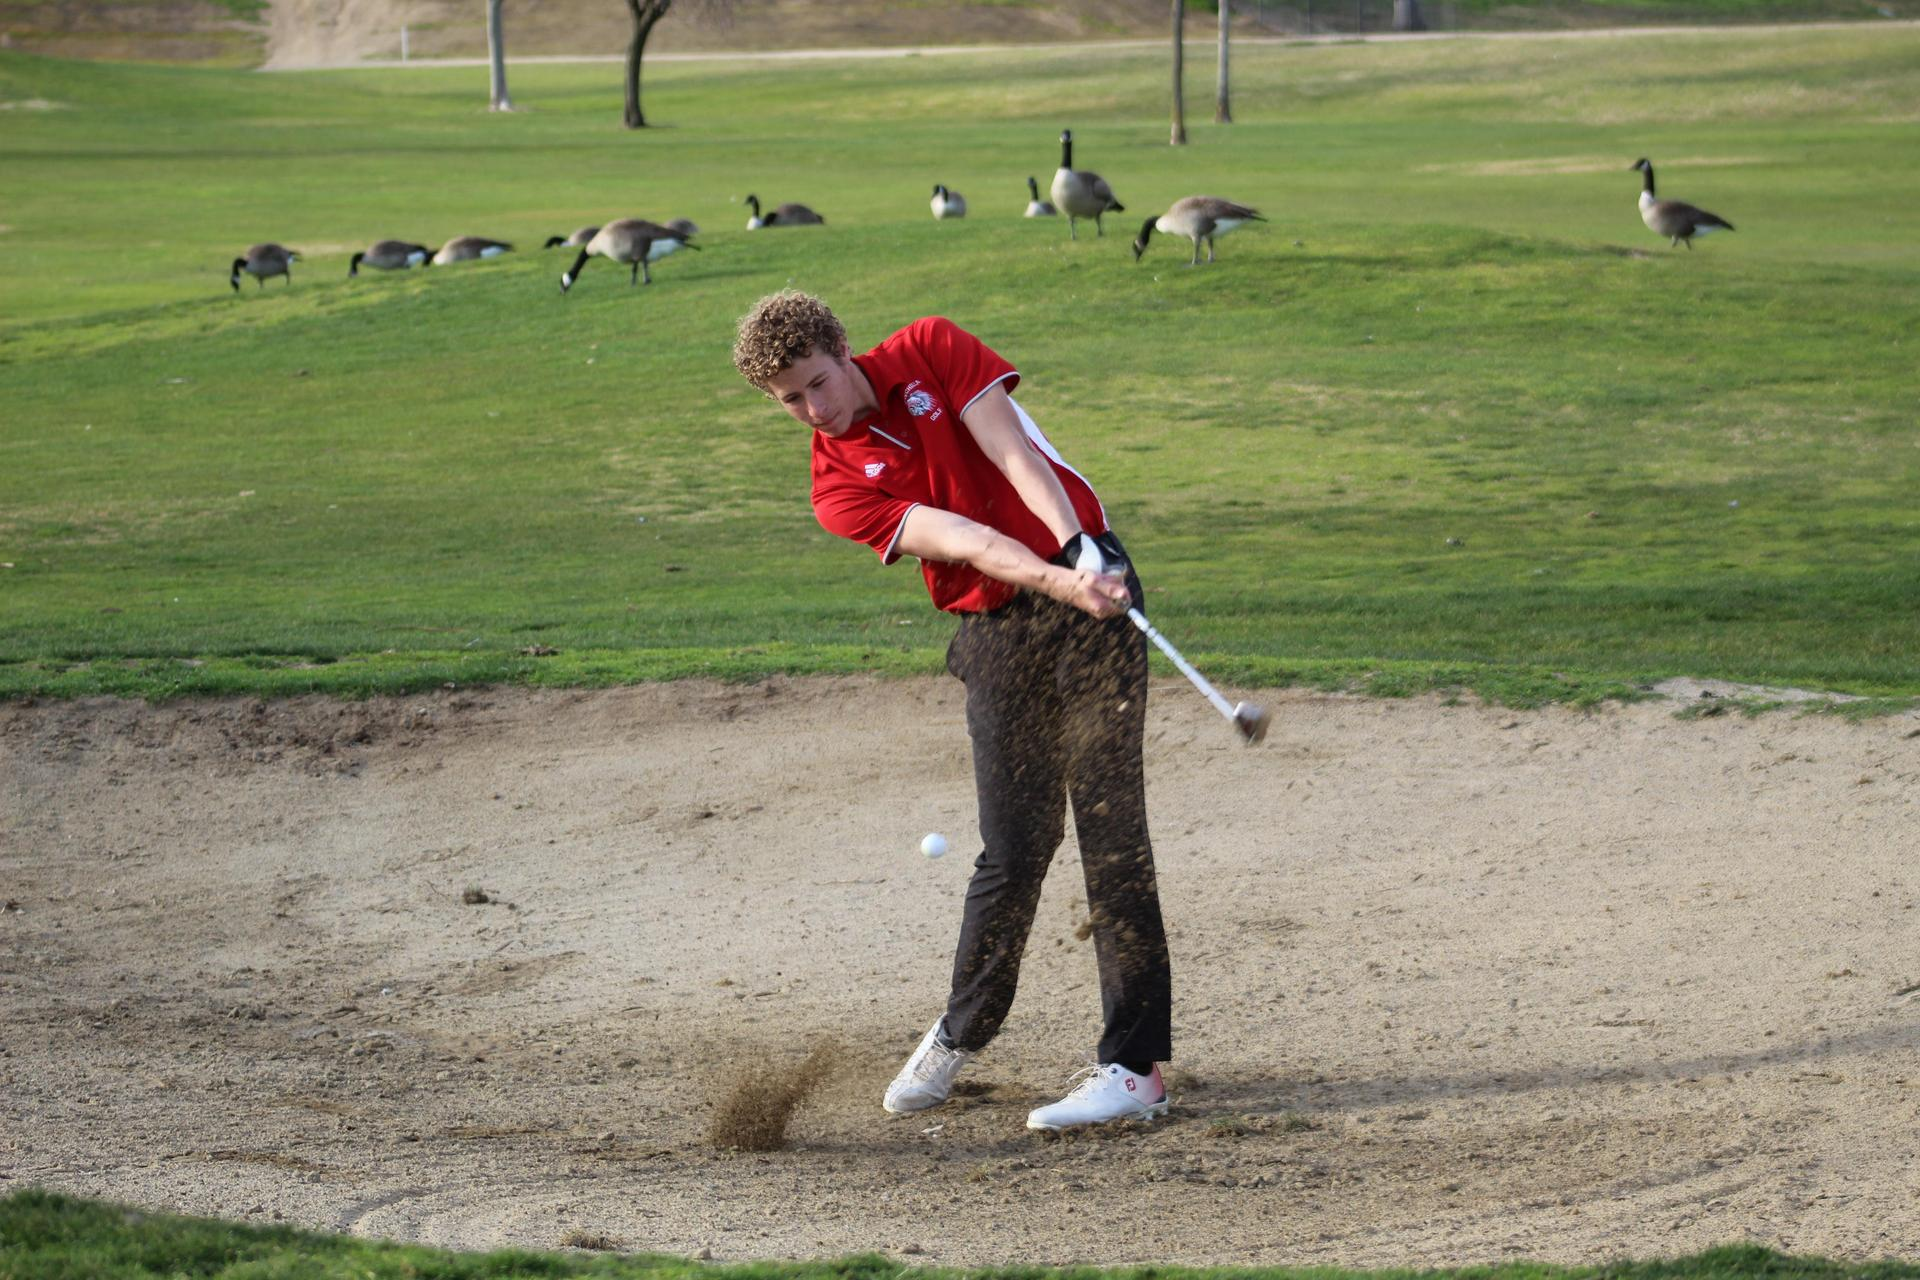 Chowchilla high boys playing golf against McLane